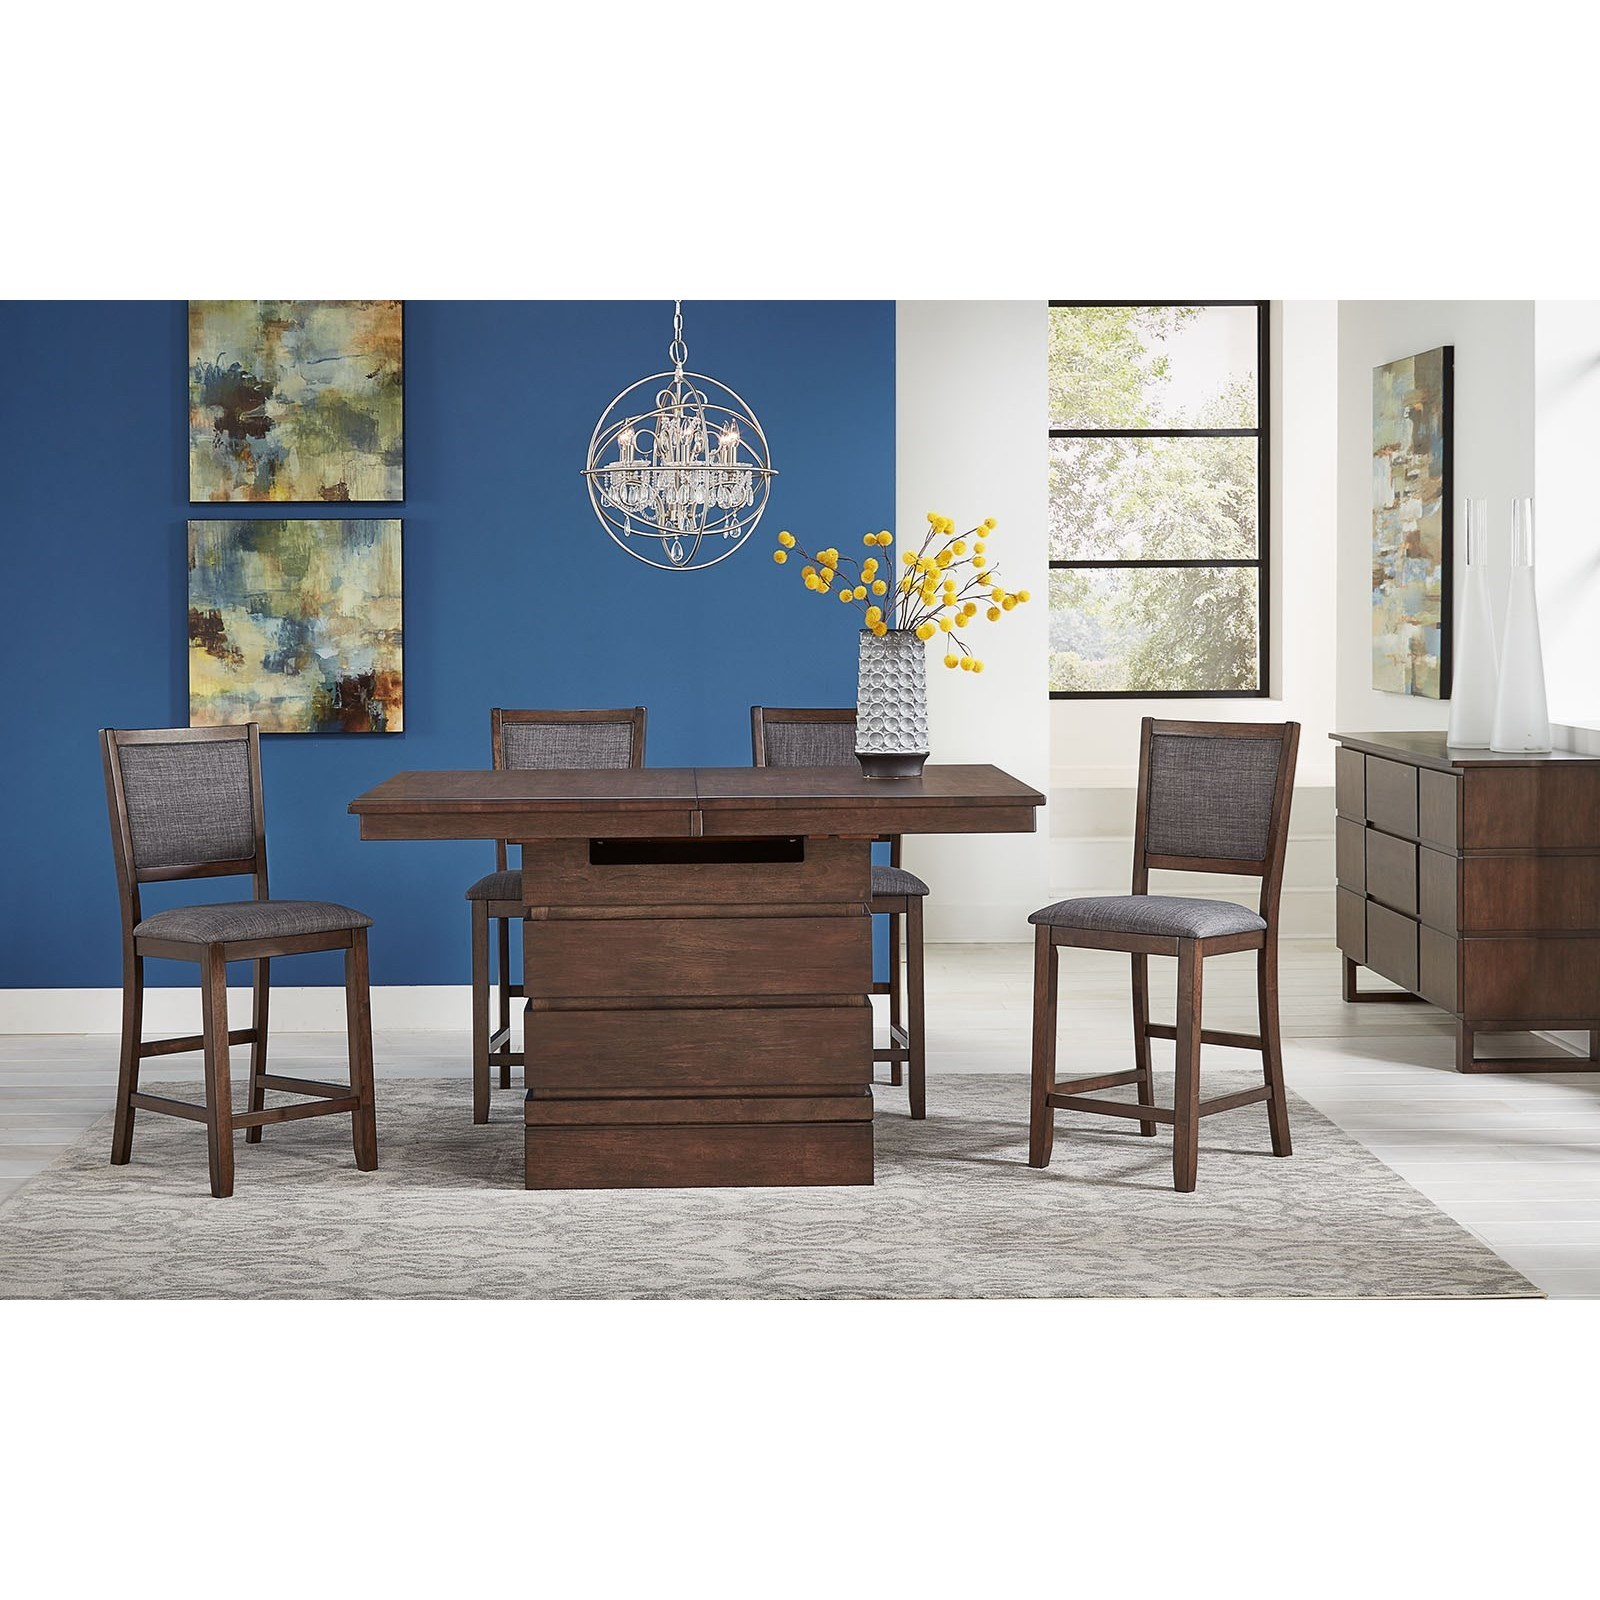 Chesney 5-Piece Dining Set  by AAmerica at Fashion Furniture